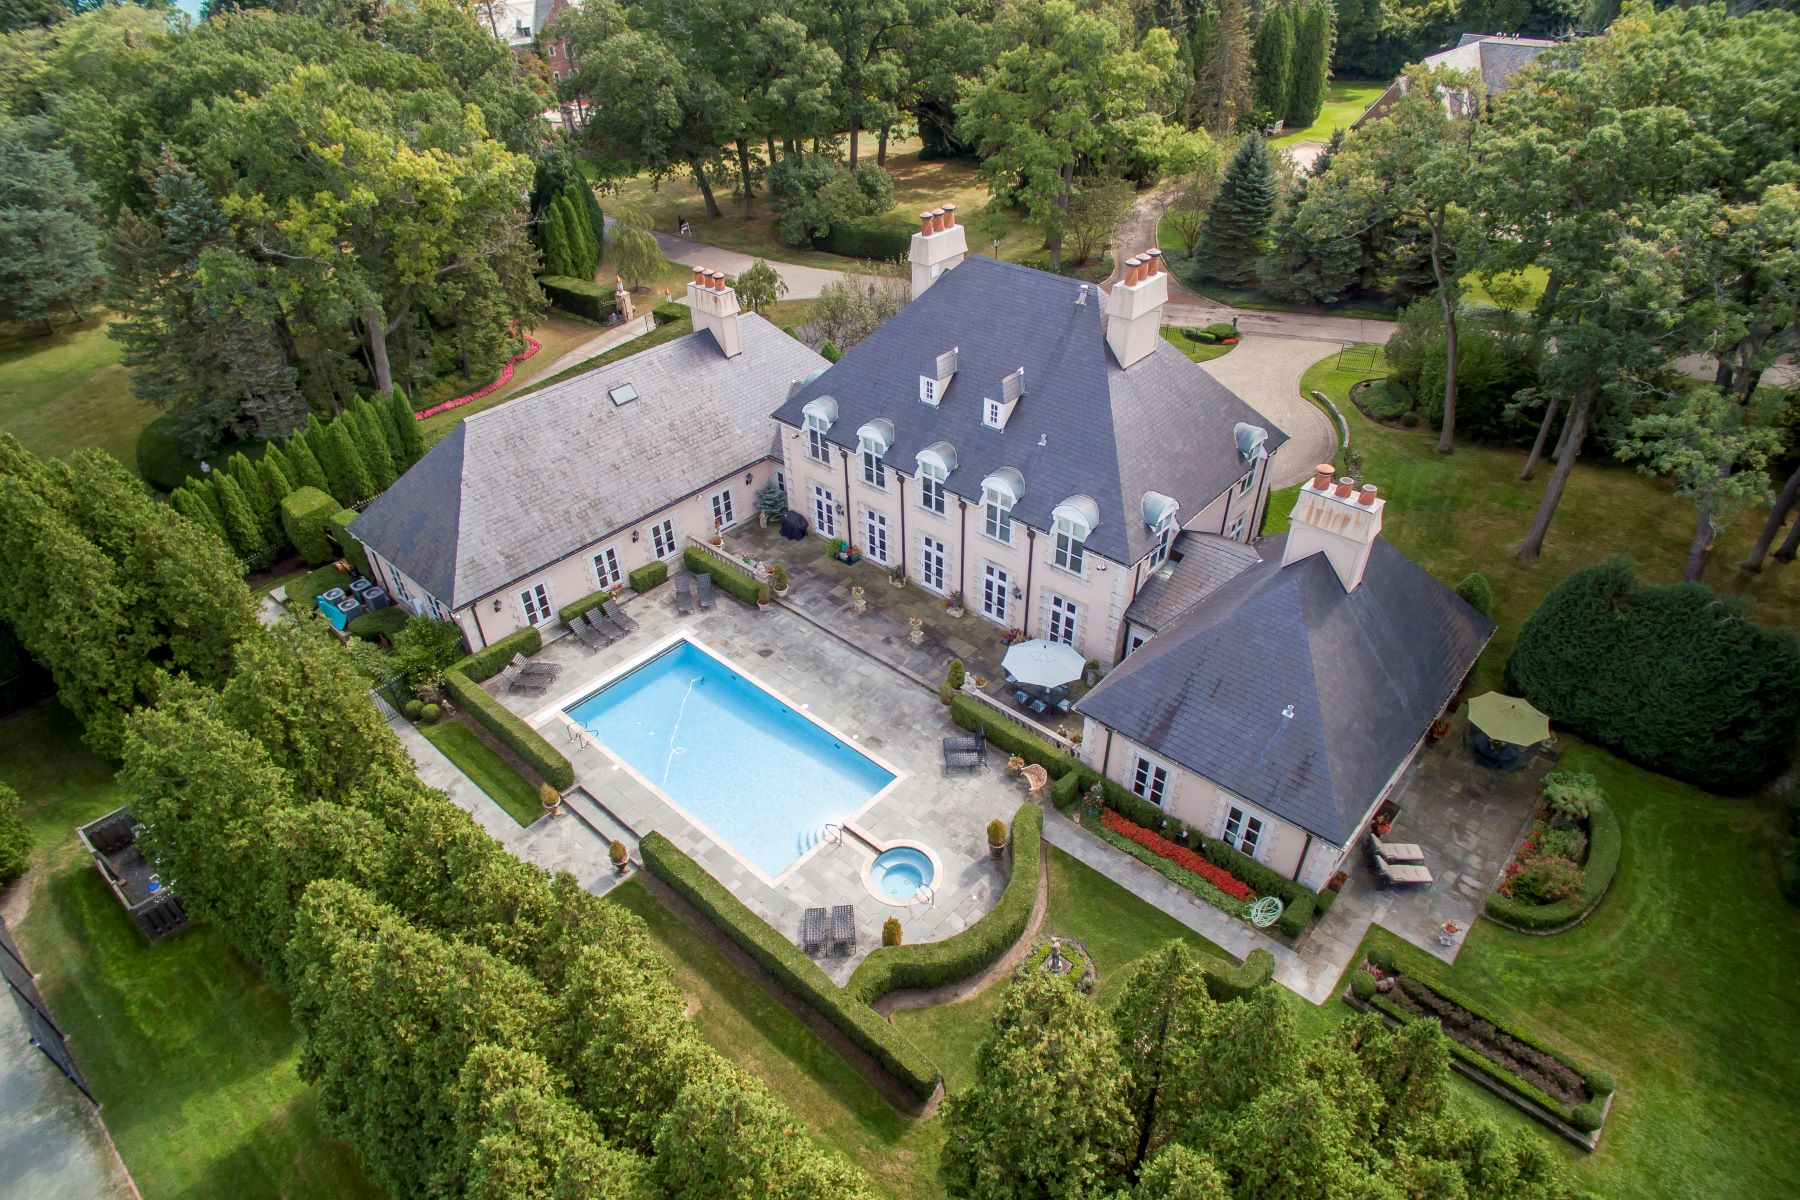 Single Family Home for Active at East Lake Forest Value 417 N Mayflower Road Lake Forest, Illinois 60045 United States